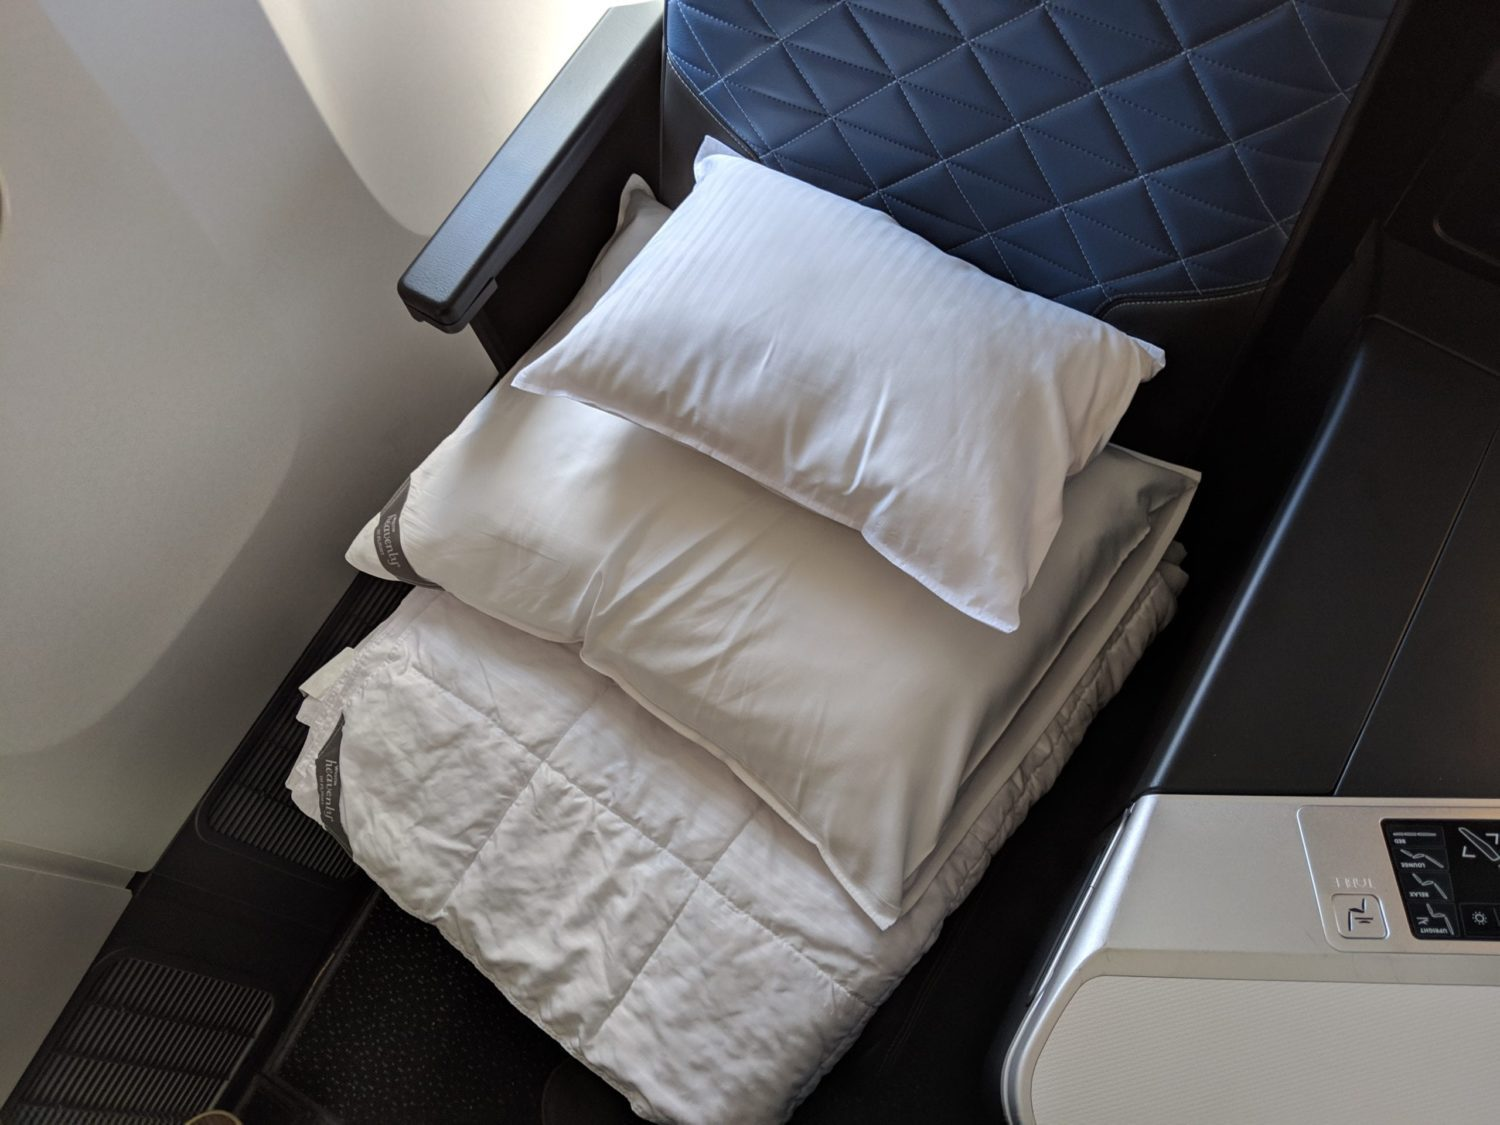 Delta One Suites Review bedding